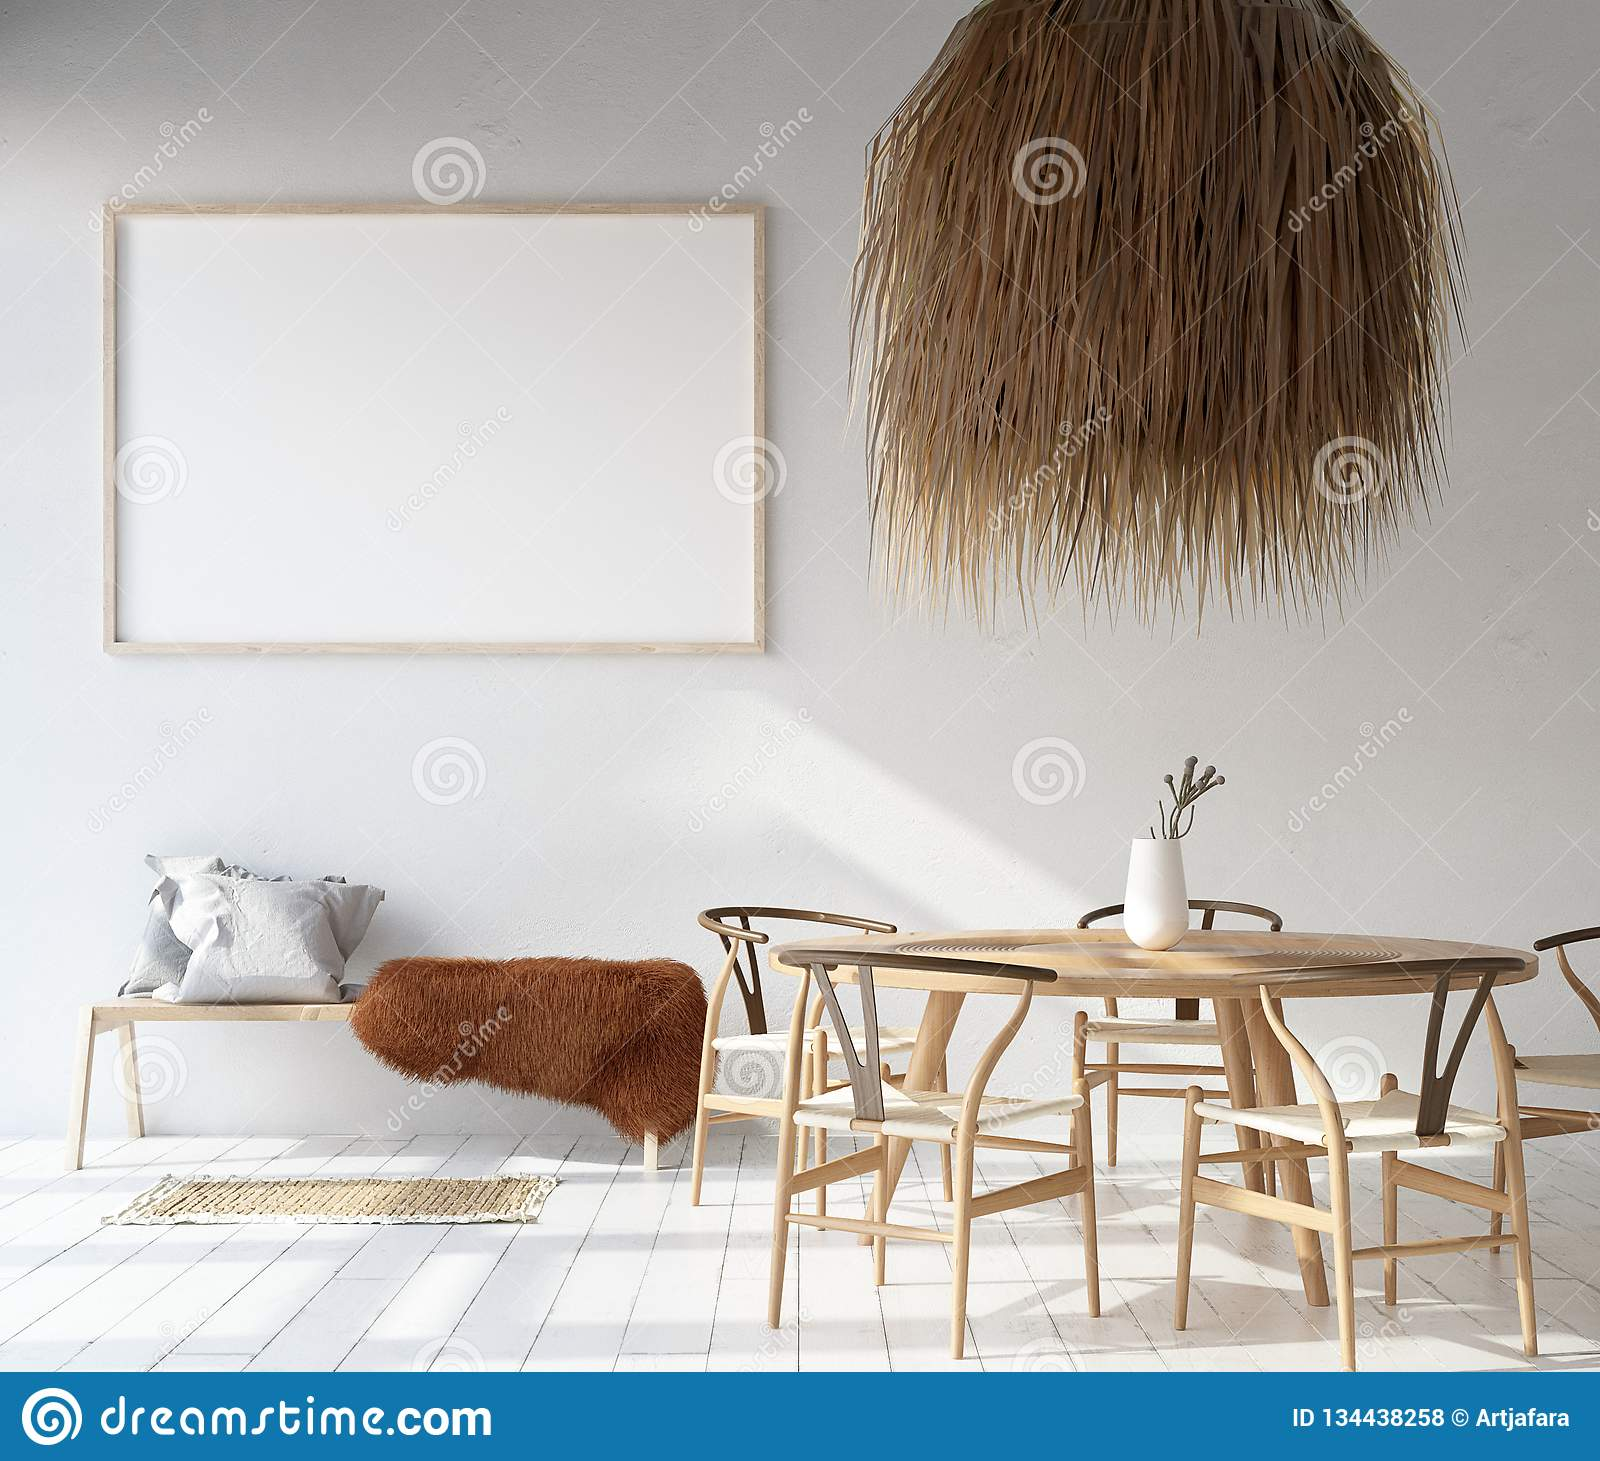 Home Interior With Poster Mockup Scandinavian Bohemian Style Stock